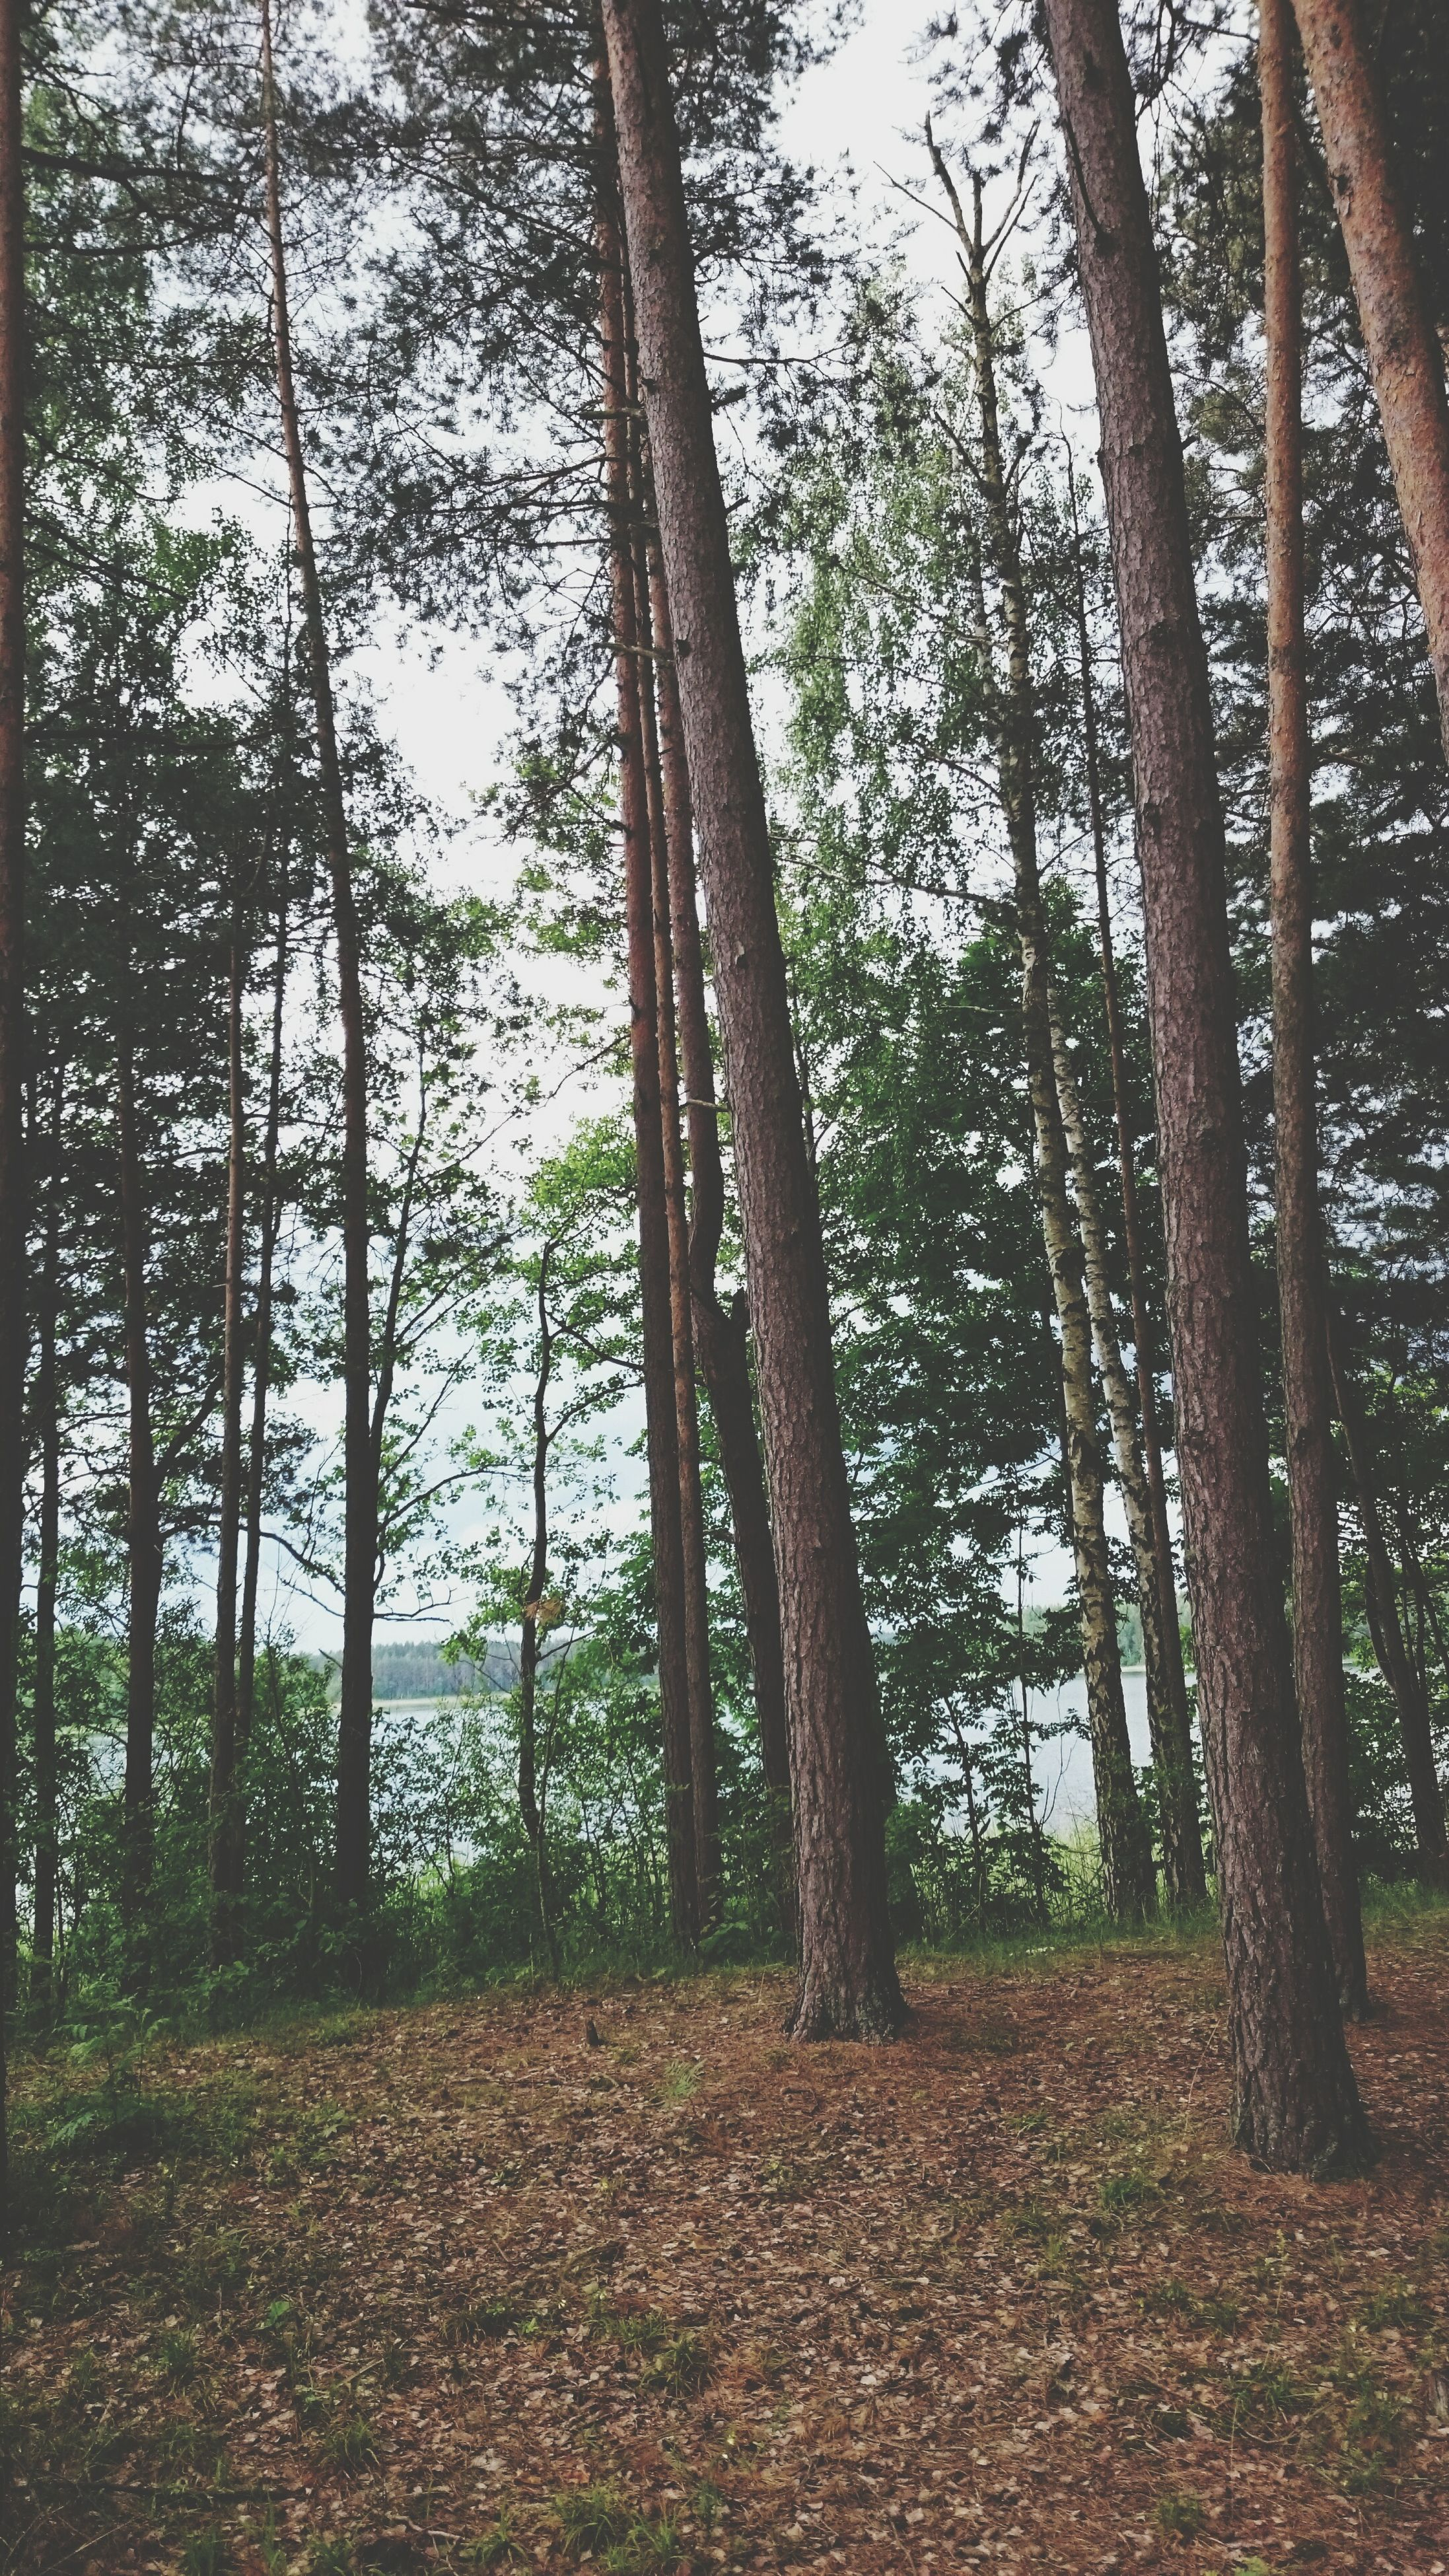 tree, tree trunk, tranquility, growth, forest, tranquil scene, nature, woodland, beauty in nature, scenics, branch, landscape, non-urban scene, sunlight, day, sky, outdoors, growing, idyllic, no people